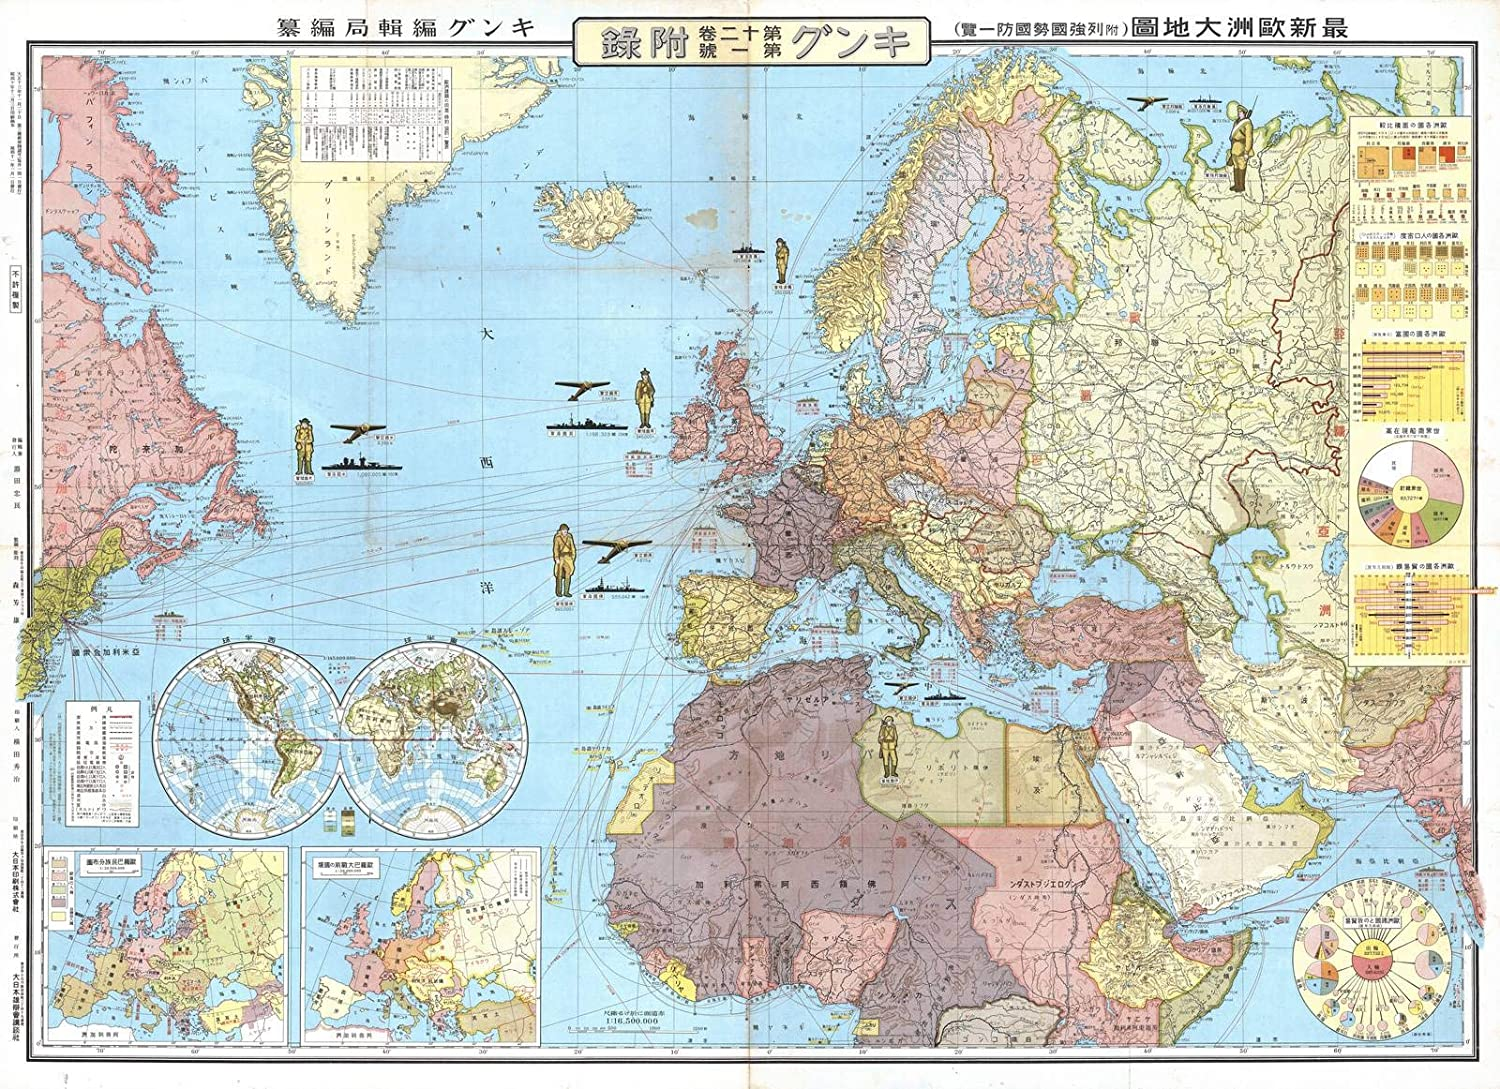 Amazon.com: Historic Map | The European - North Atlantic ... on middle east borders after ww1, ottoman empire map after ww1, simple map of russia after ww1, map religions ottoman,